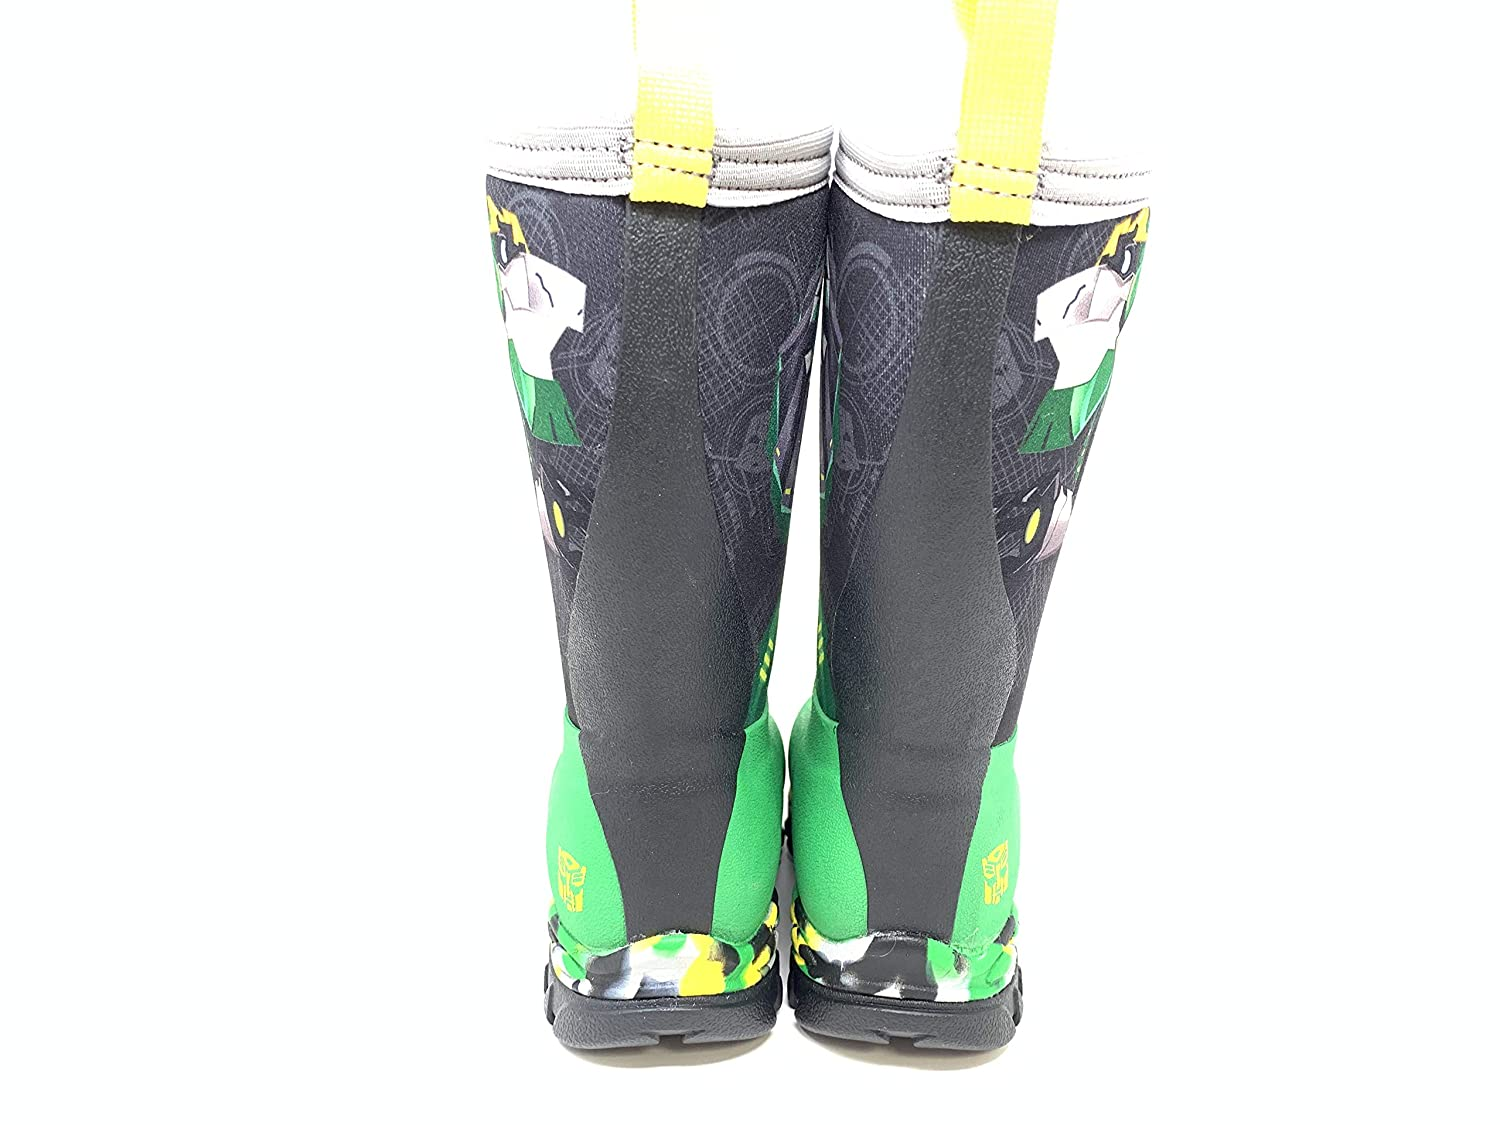 Muck Boot Boys Rugged II Transformers Grimlock Boots Size 1 Green